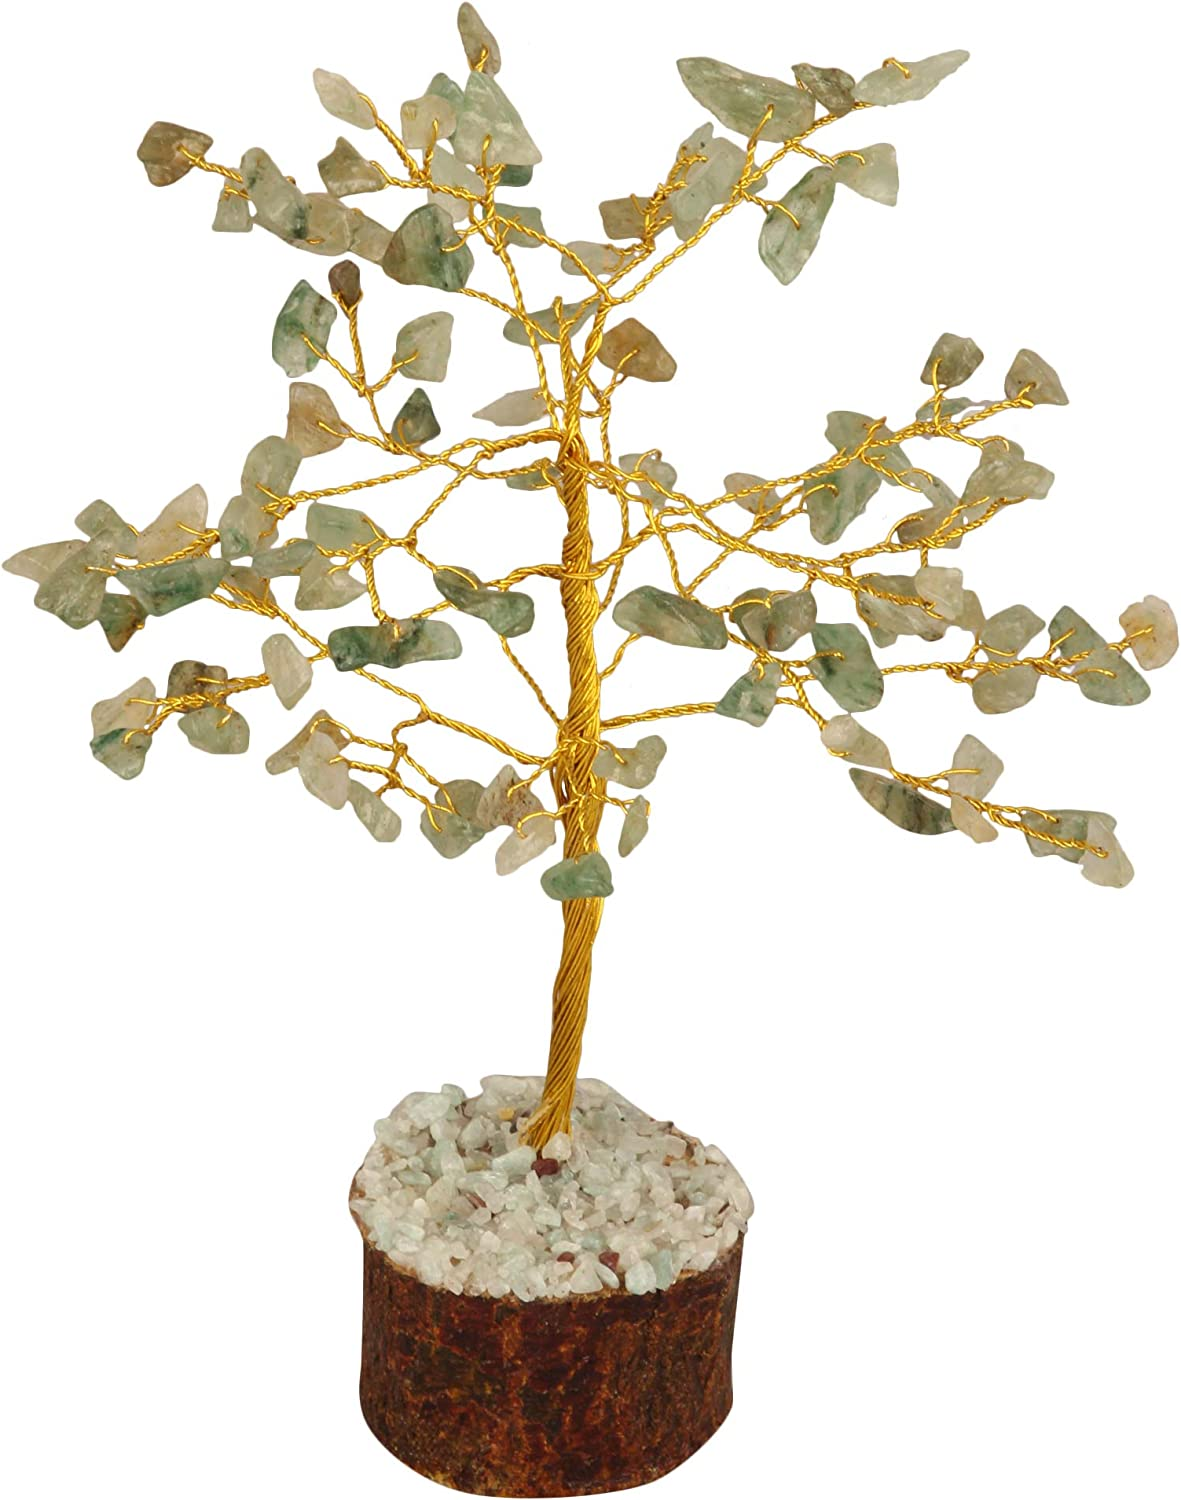 FASHIONZAADI Green Jade Gemstone Crystal Tree for Feng Shui Bonsai Healing Crystals Money Tree Chakra Balancing EMF Protection Home Table and Garden Décor Great Gift Set Size: 7-8 Inch (Golden Wire).